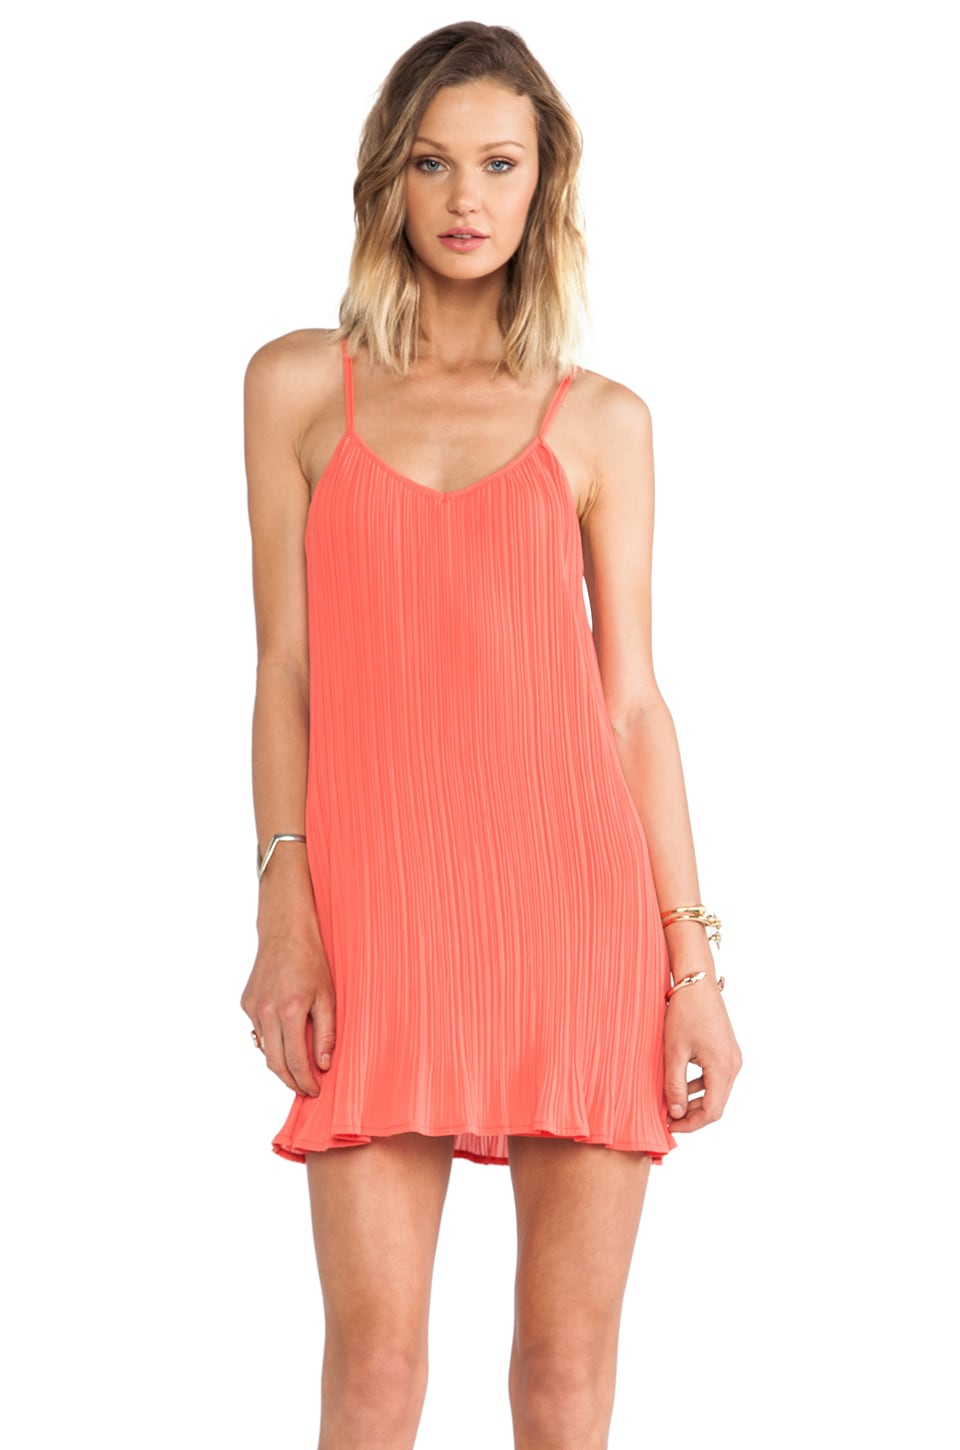 Bobi BLACK Pleated Chiffon Swing Dress in Coral